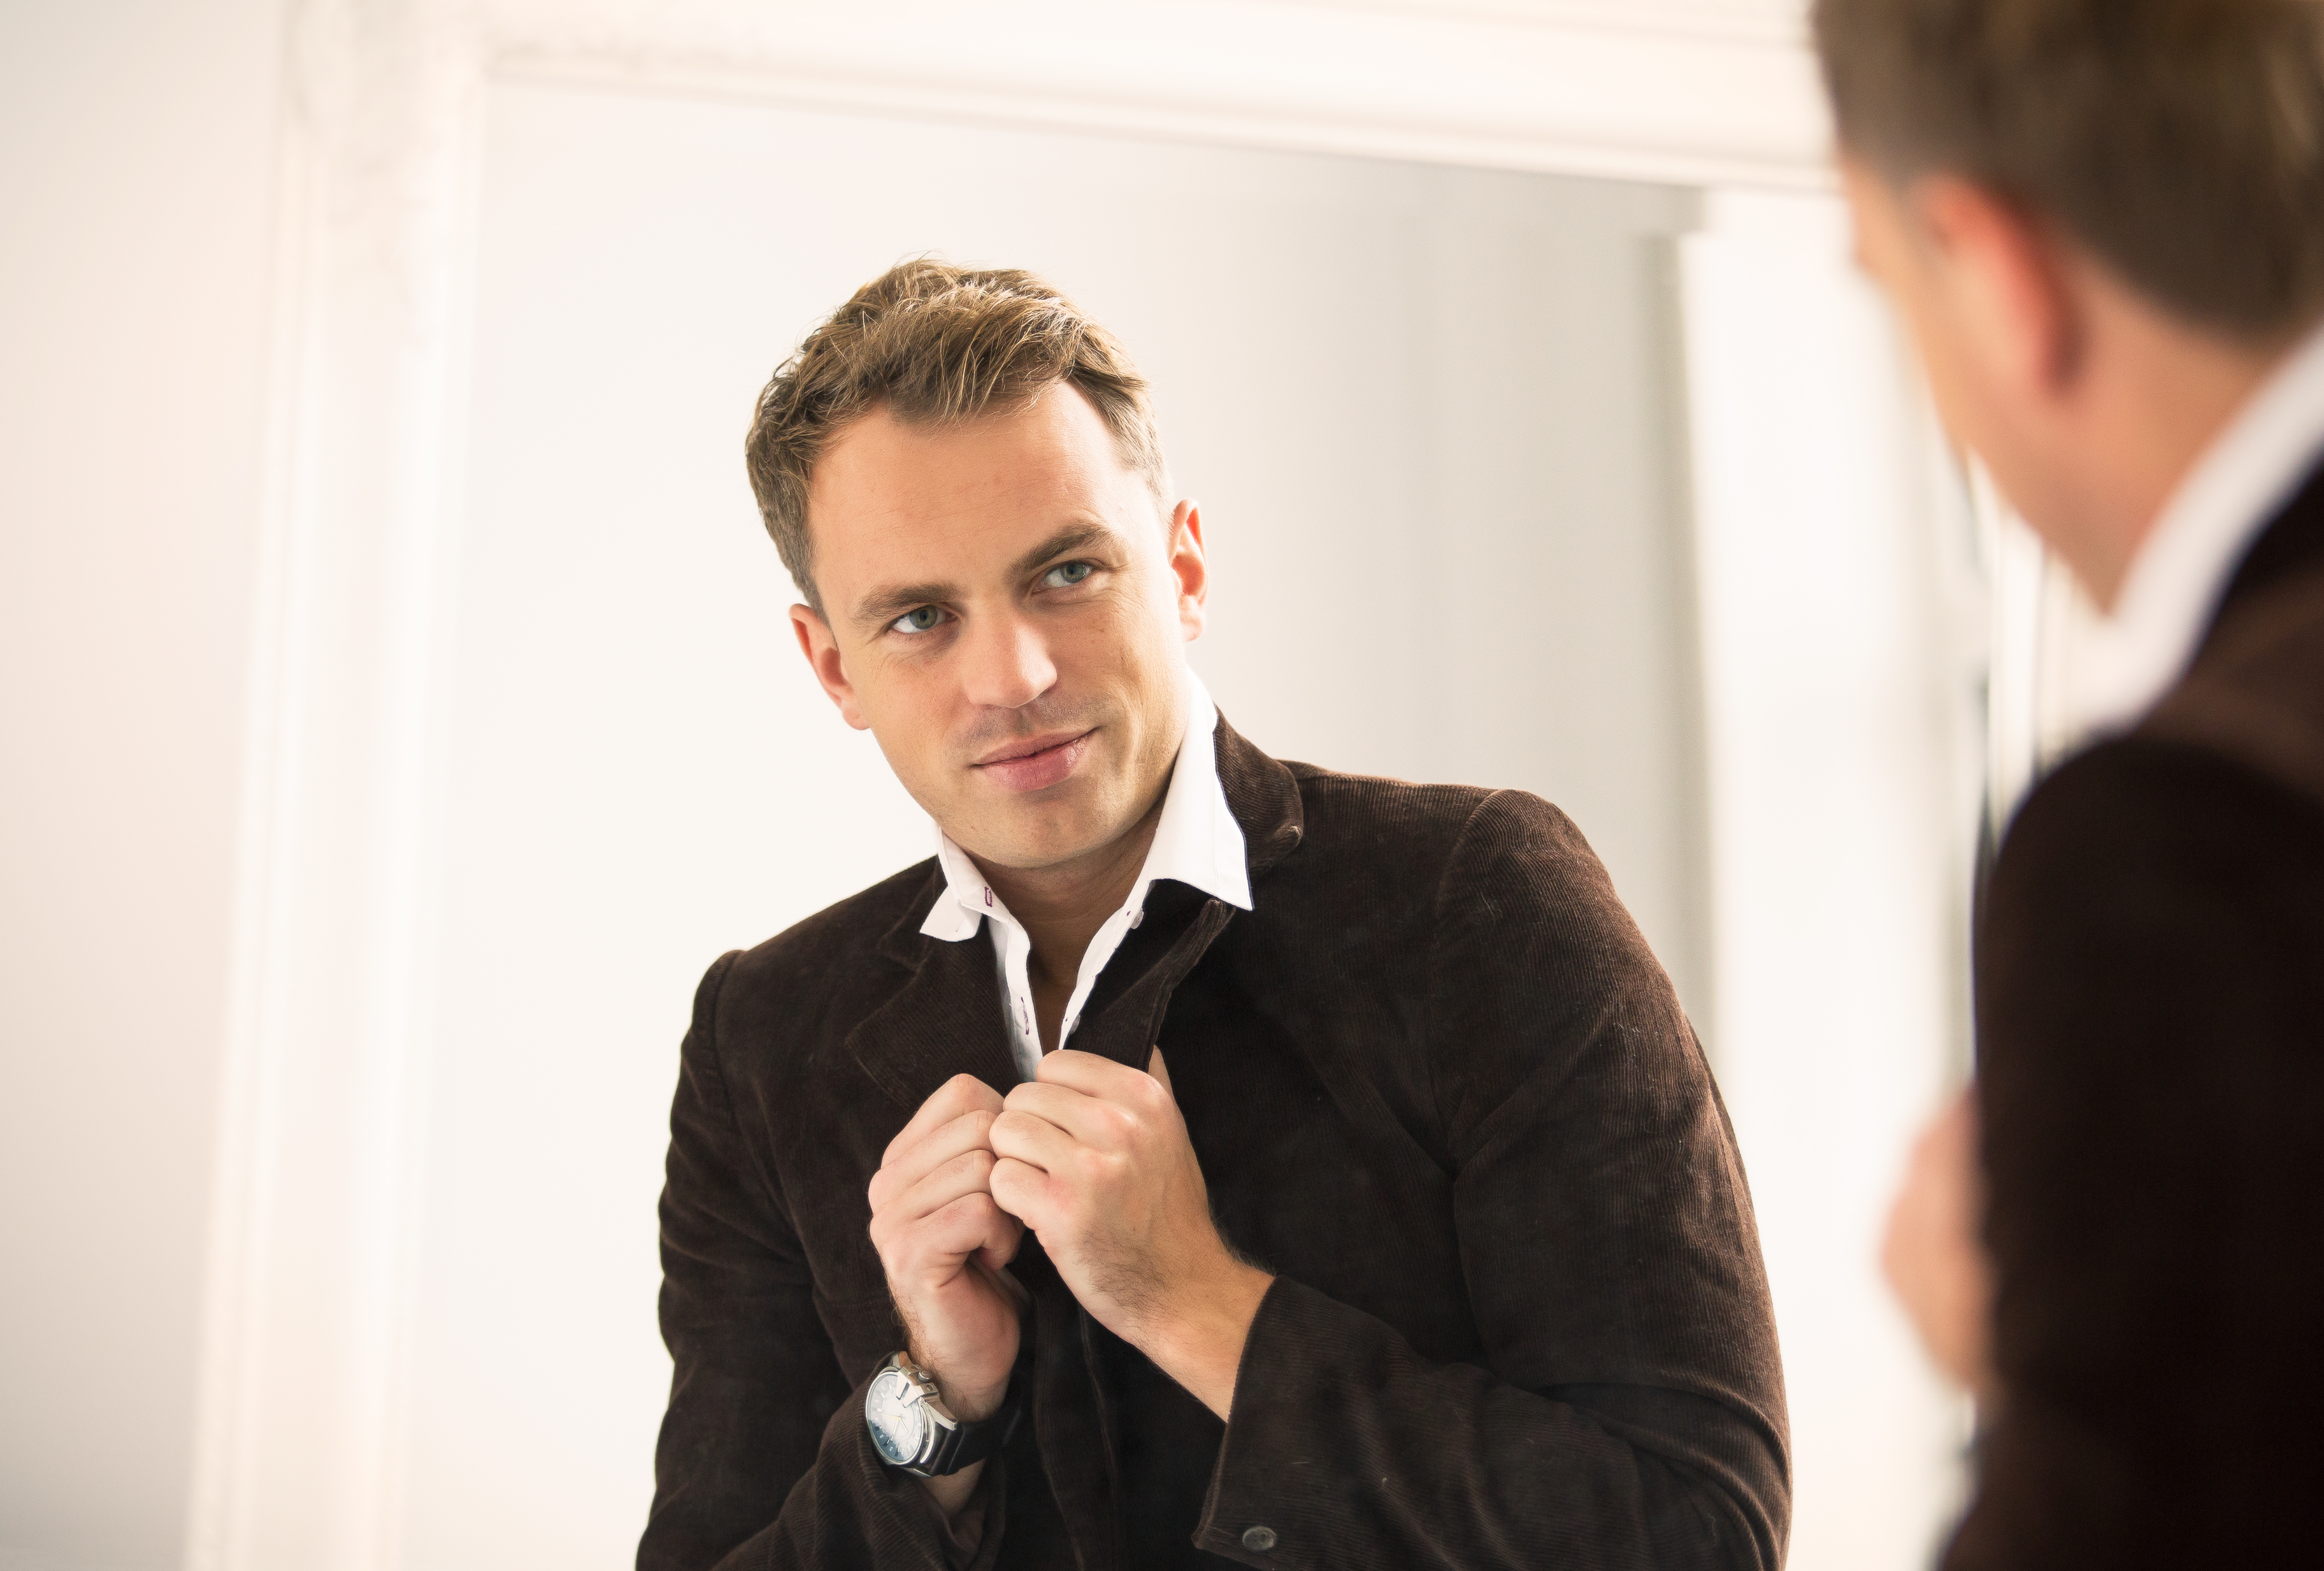 man looking in mirror, what he wants you to say